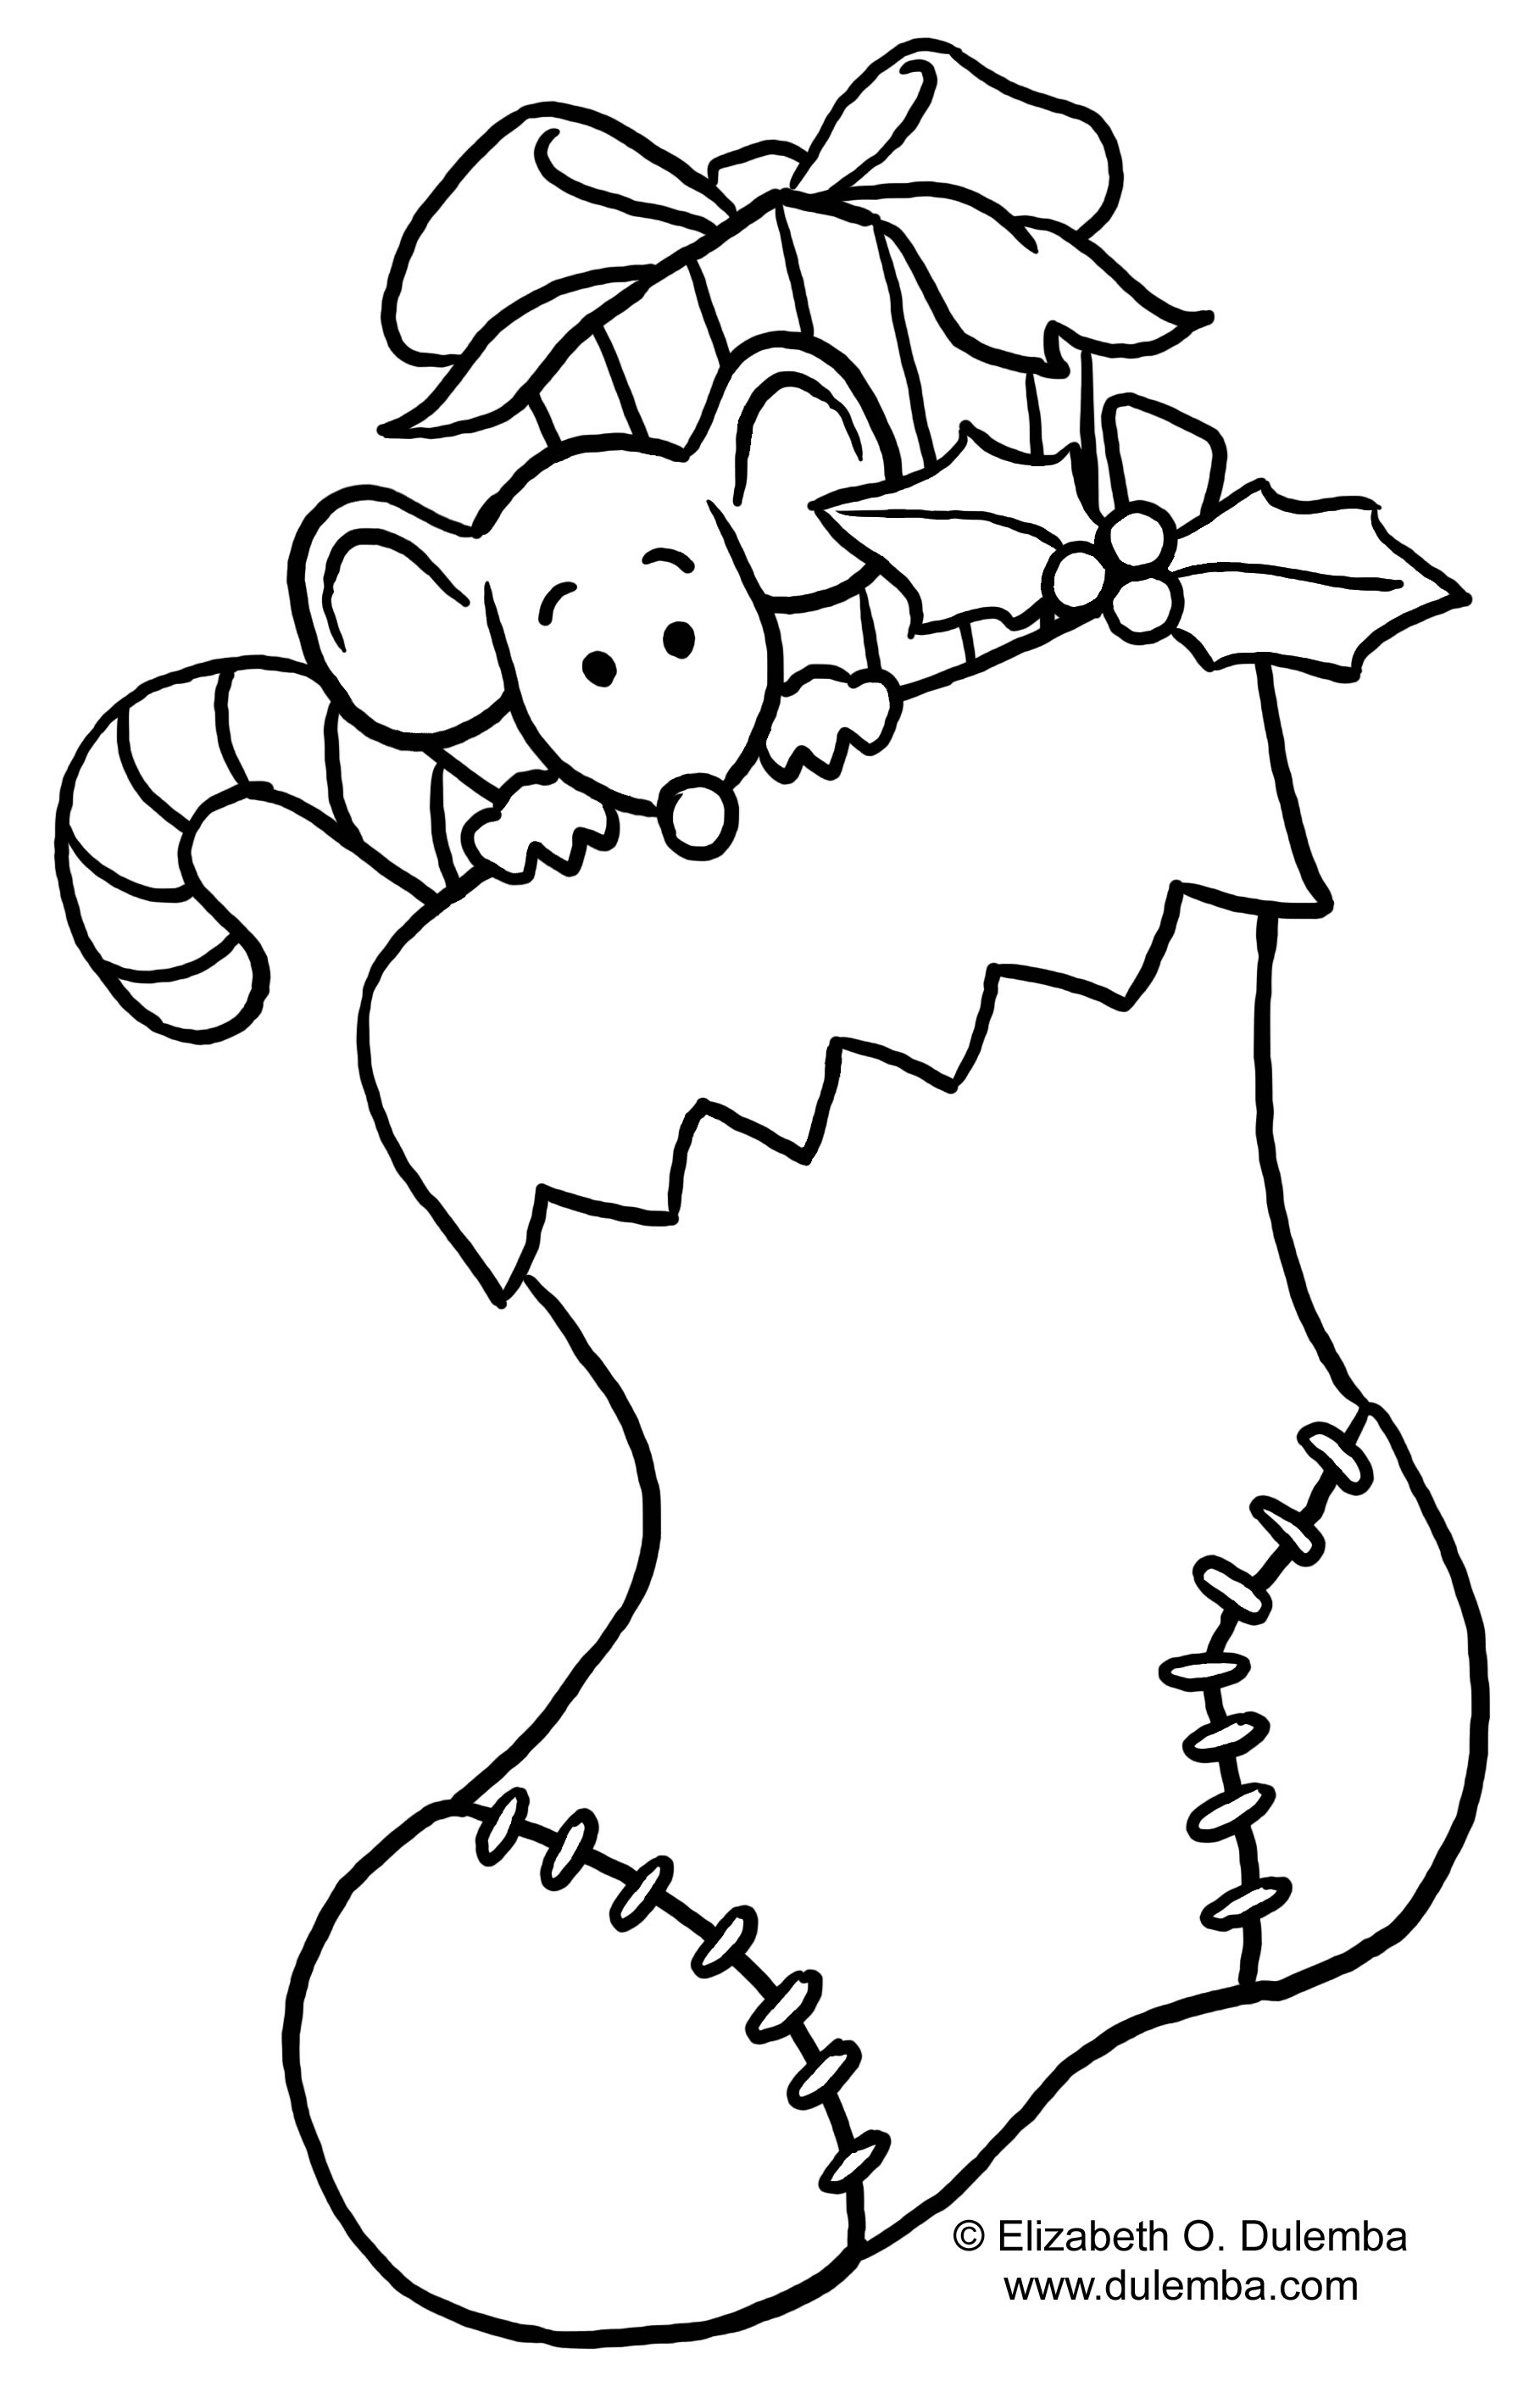 Christmas Coloring Pages To Print With For Kids 2018 Z31 Page